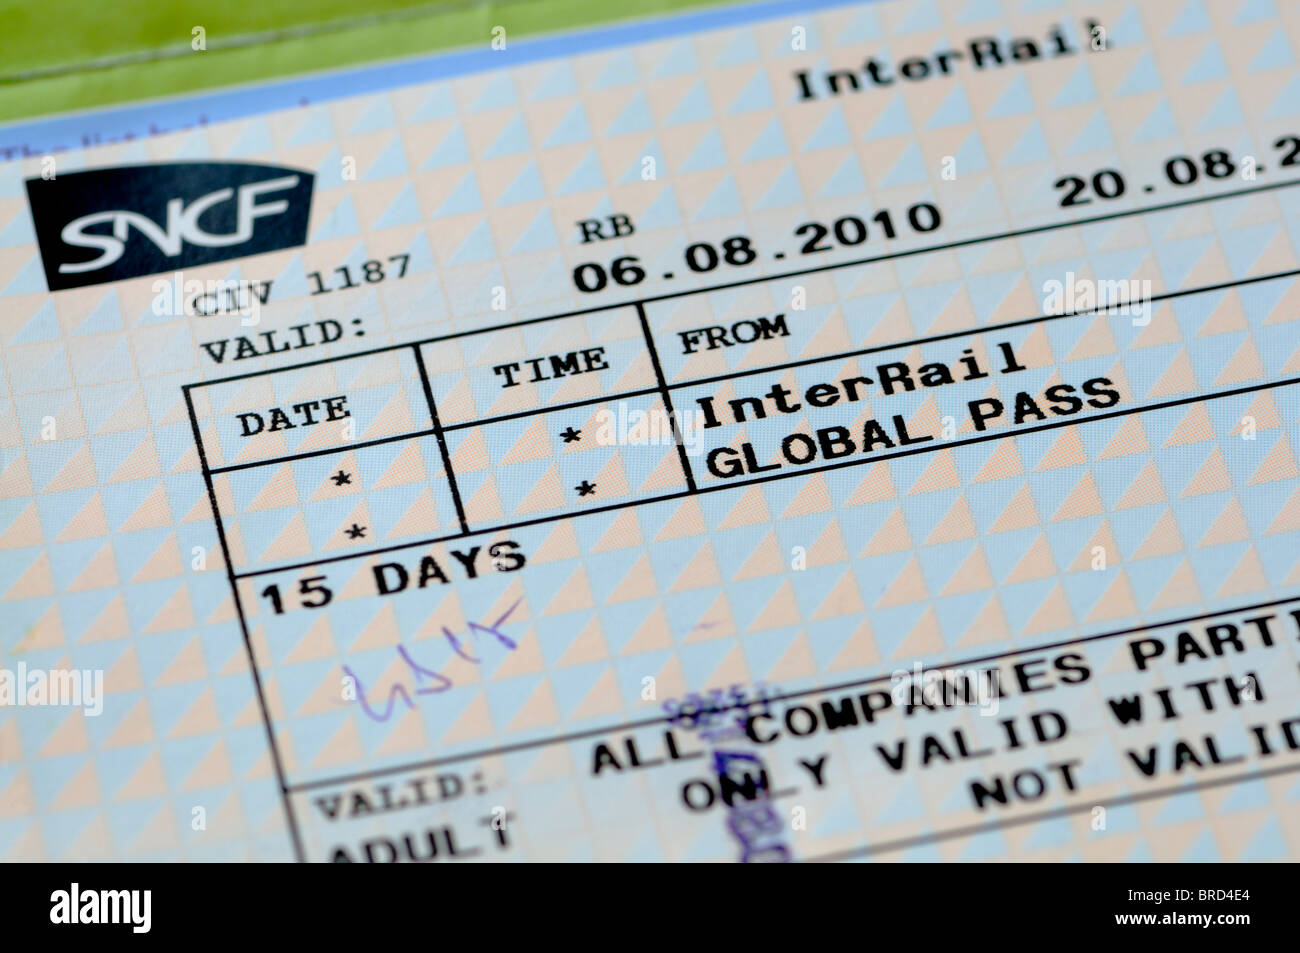 Interrail ticket